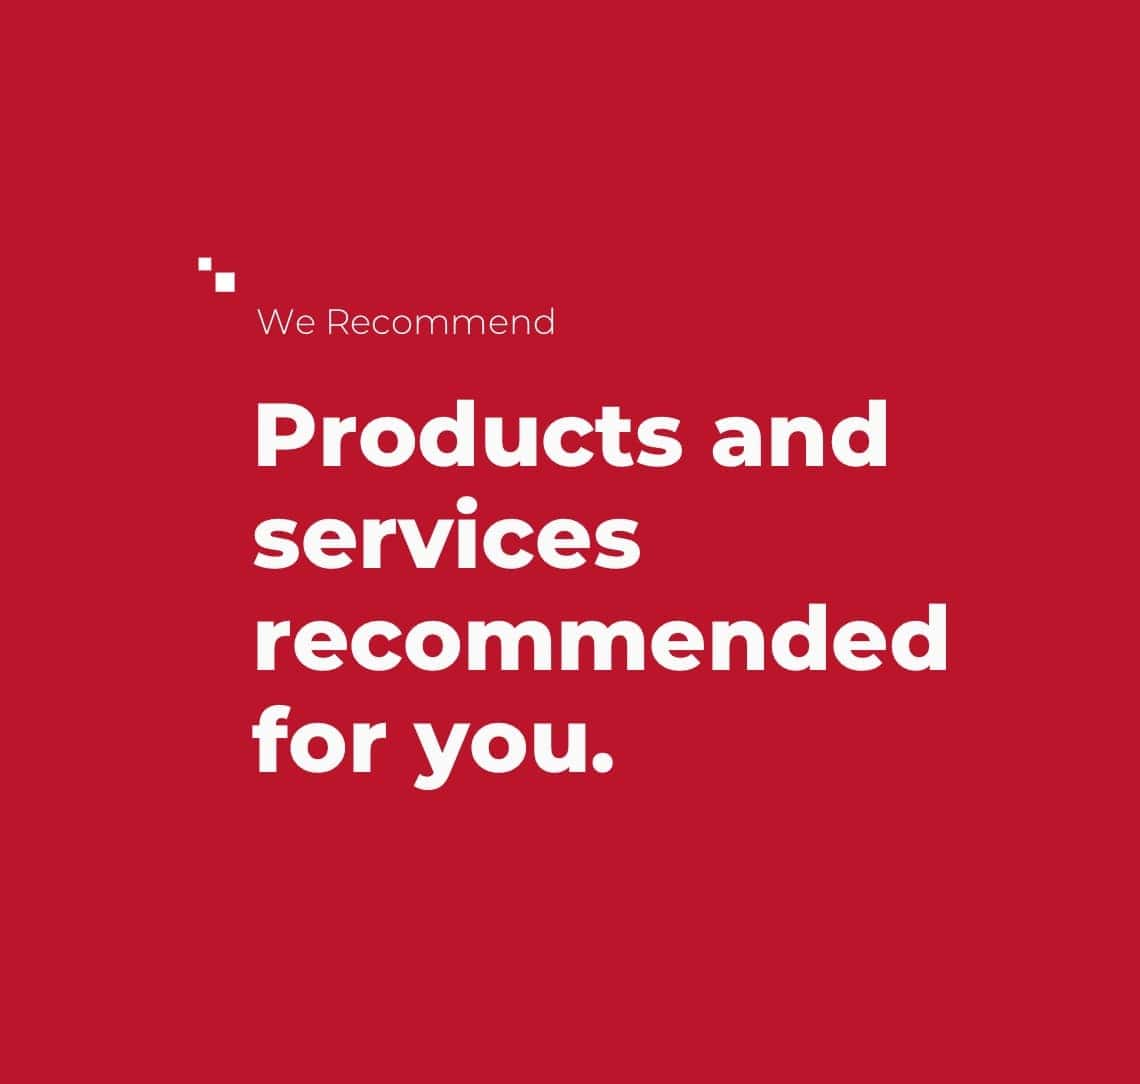 Products and Services reccommended for you.